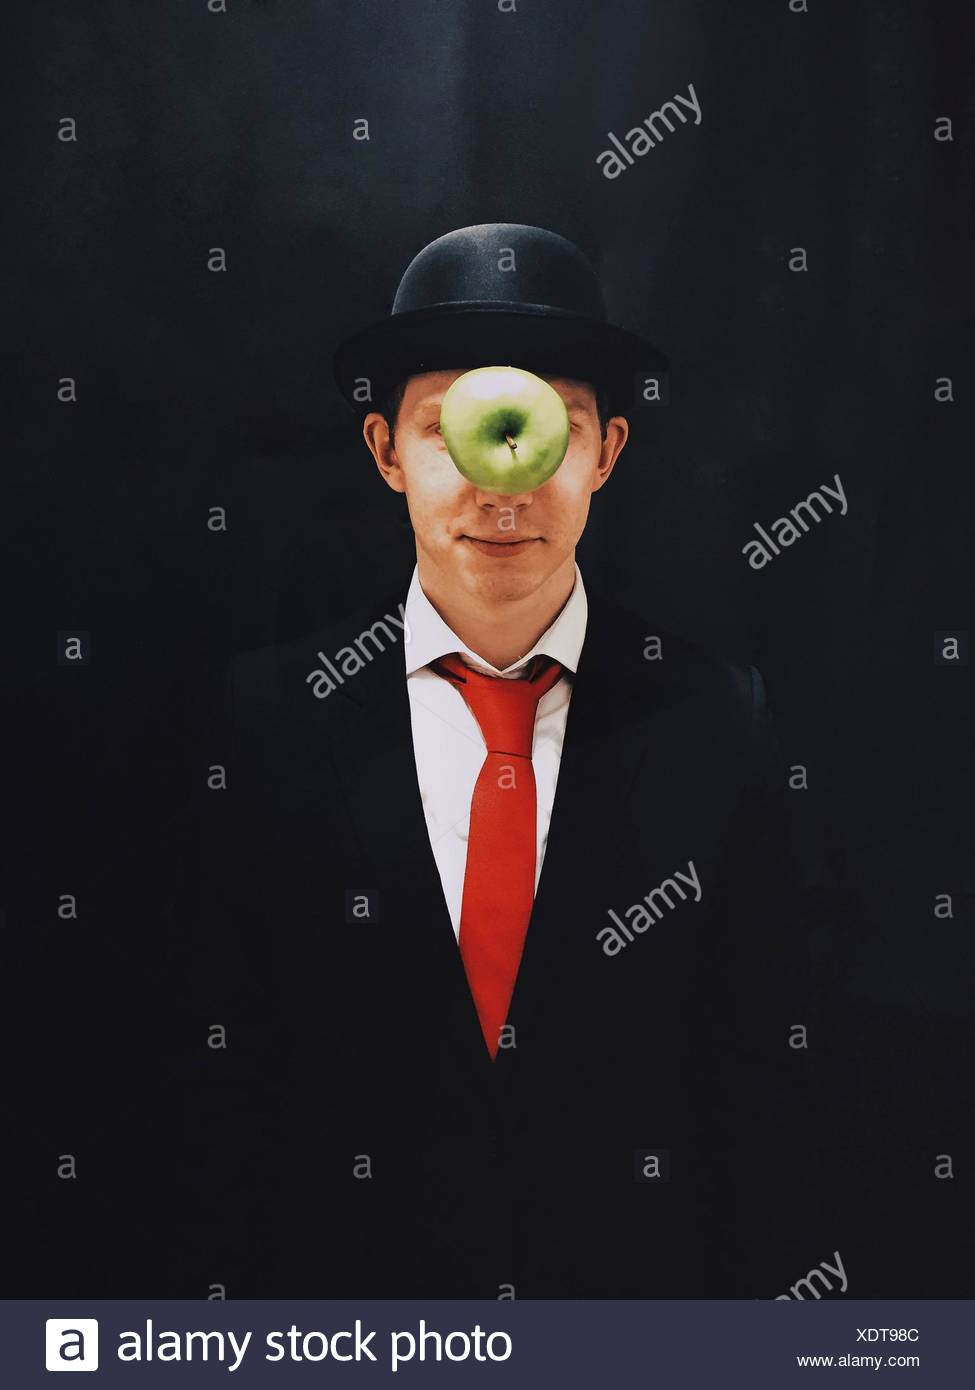 Apple In Mid-Air In Front Of Man With Hat Against Black Background - Stock Image